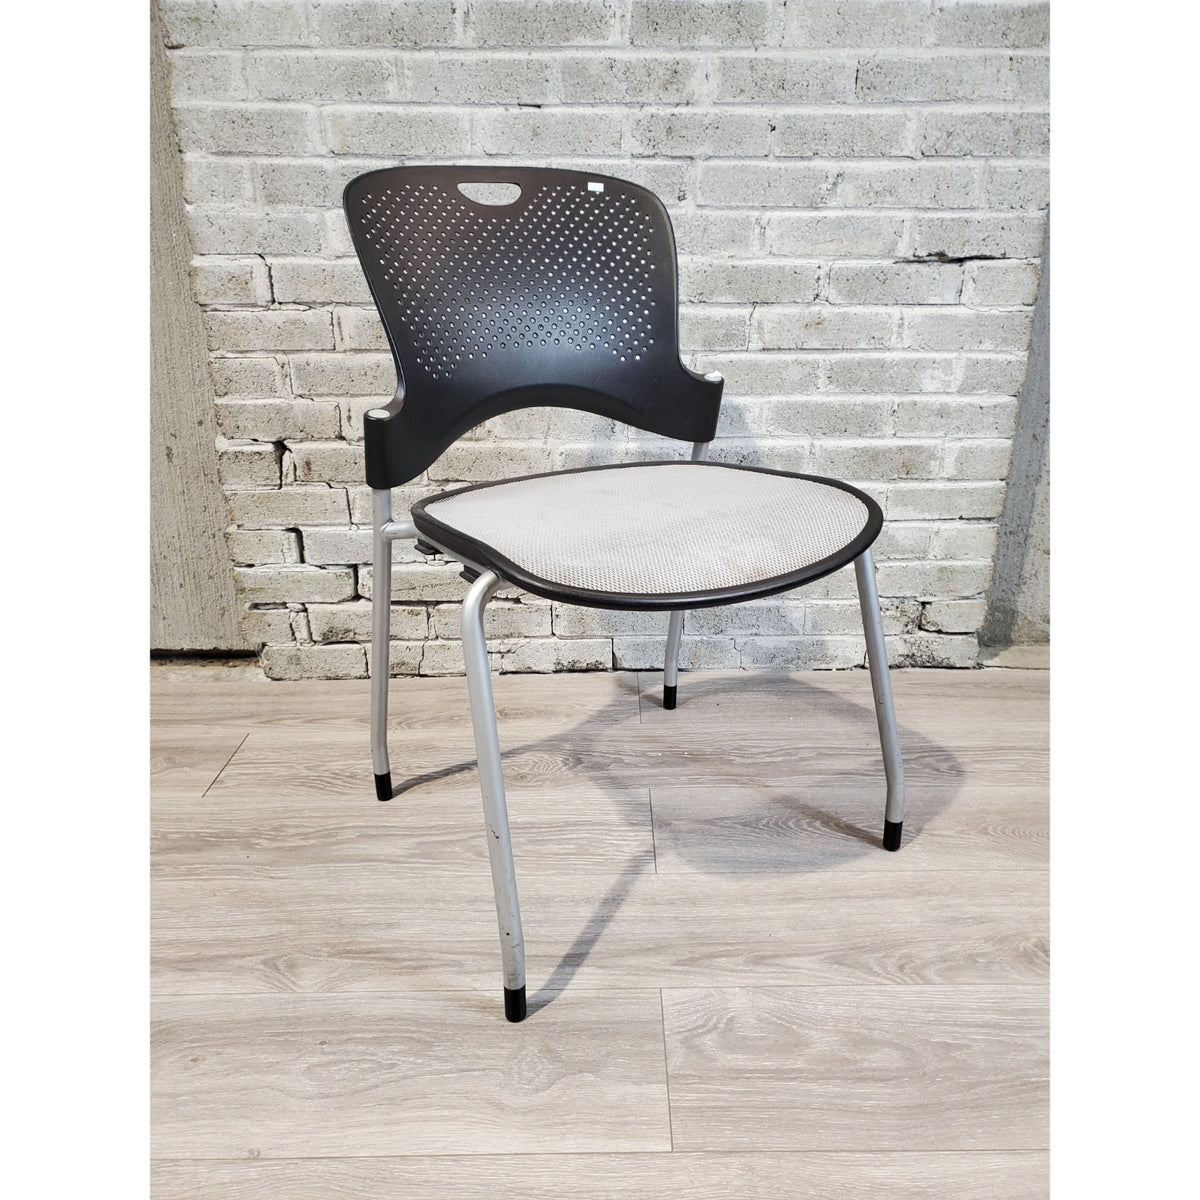 Pre-Owned - Used Herman Miller Caper Side Chair - Black and Gray - Duckys Office Furniture